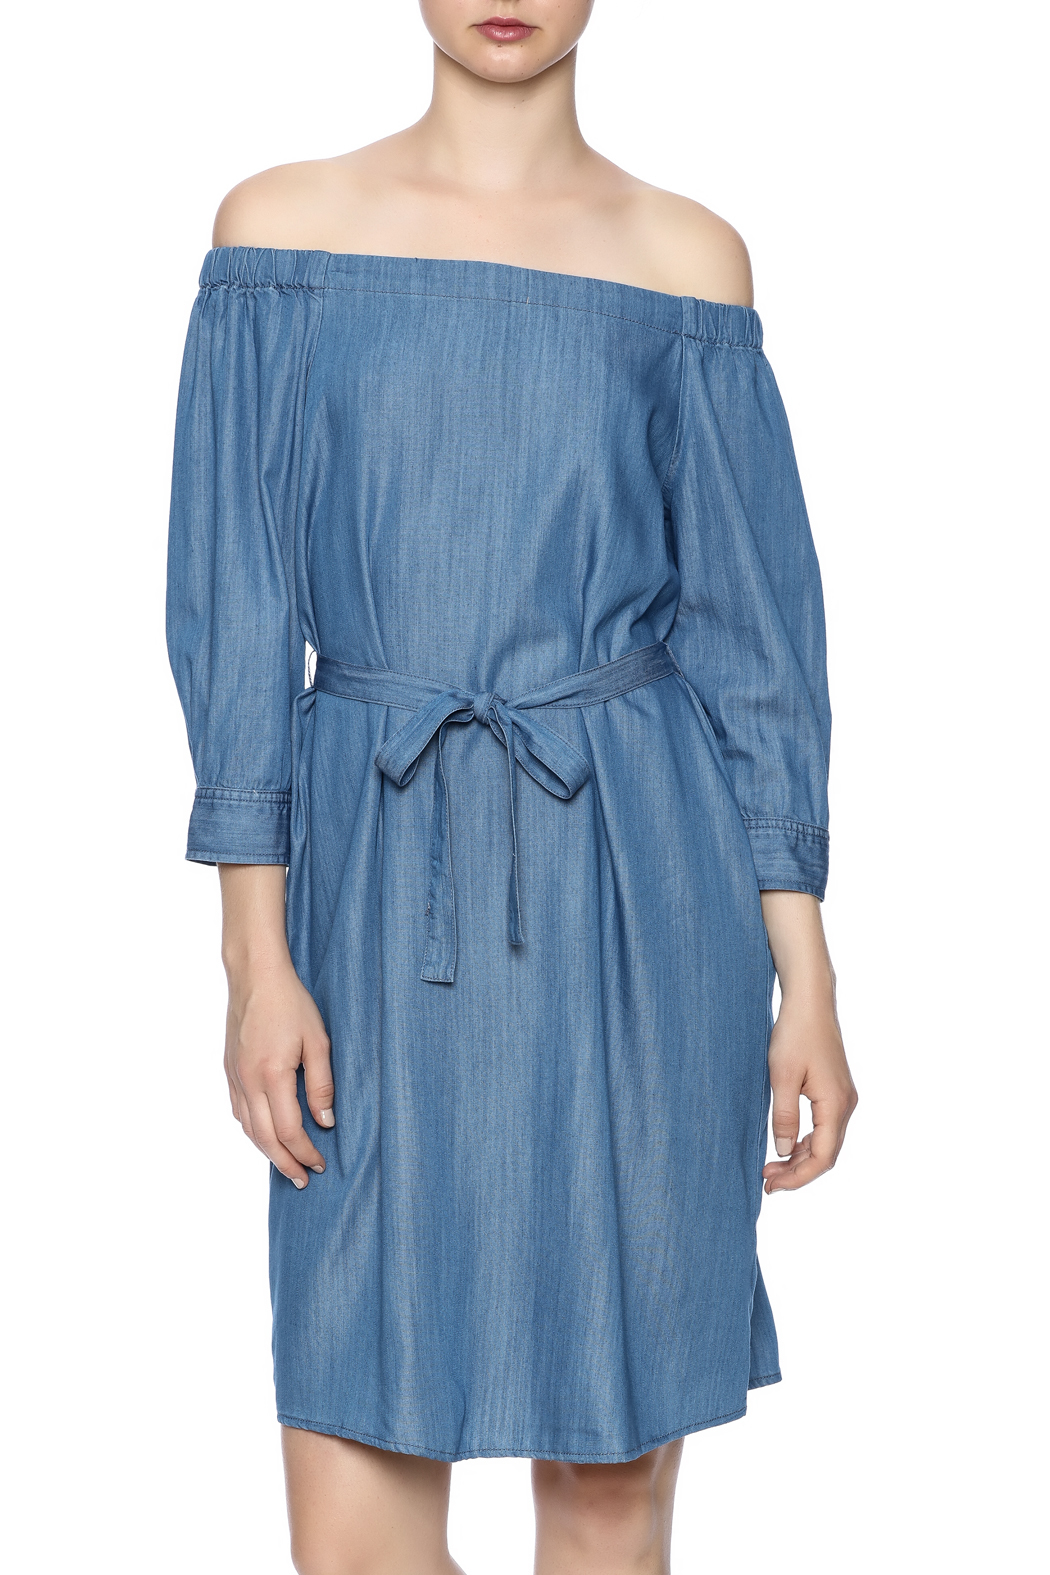 do be belted denim dress from miami by of the day